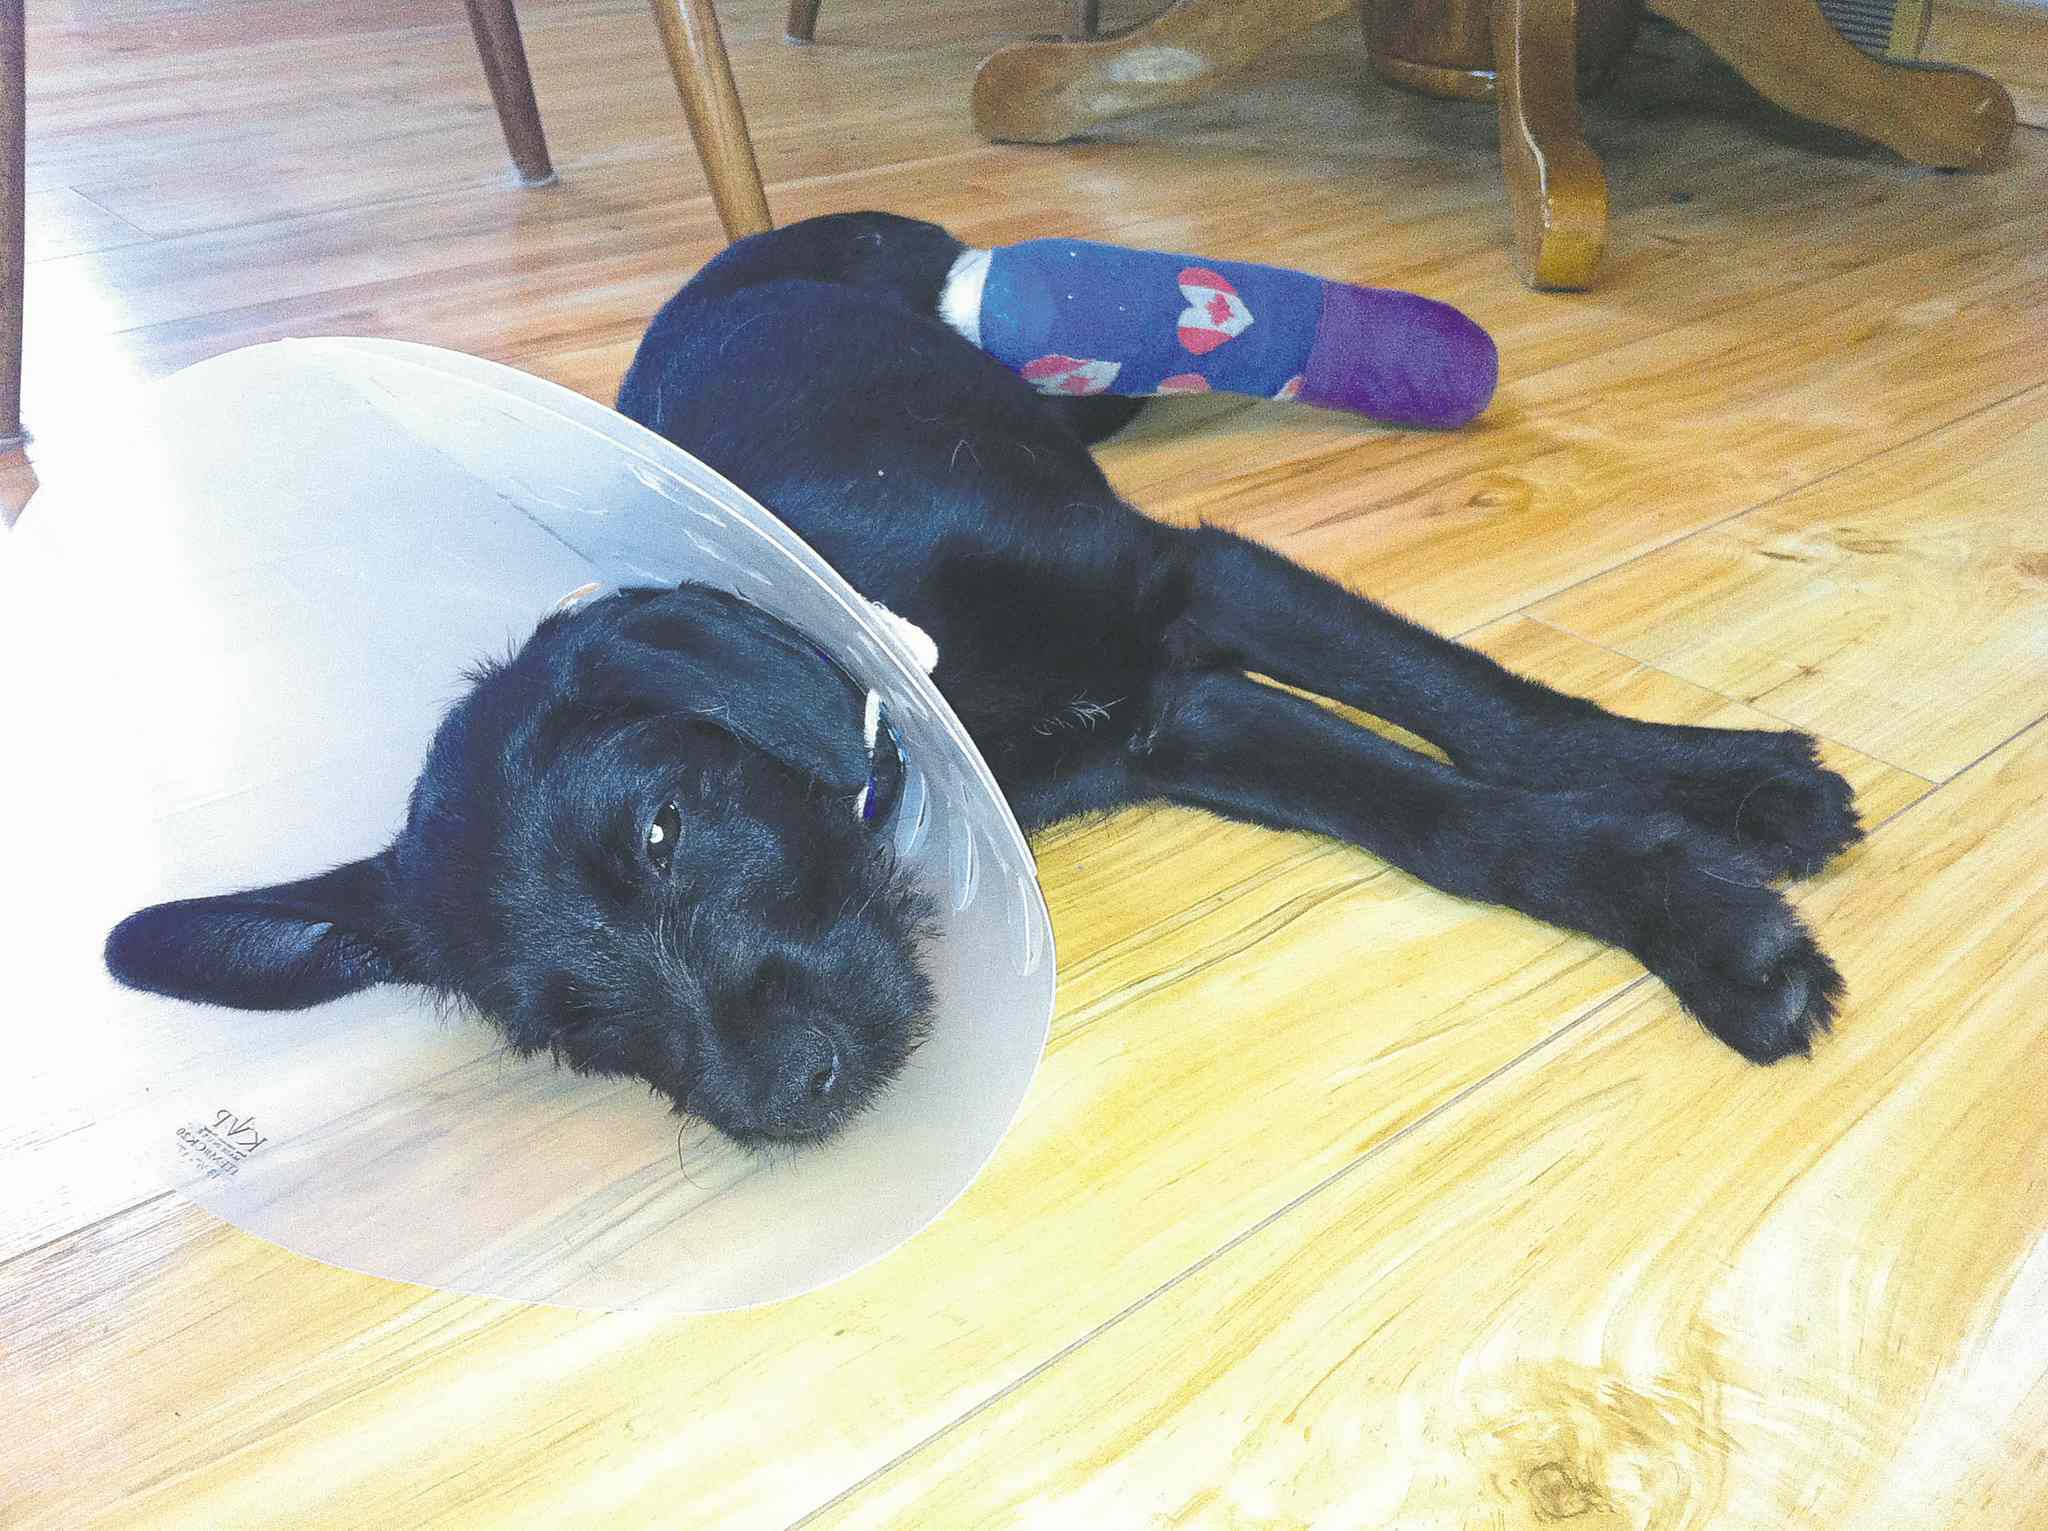 Boo Boo is a three month old Terrier cross with a fractured hind leg.